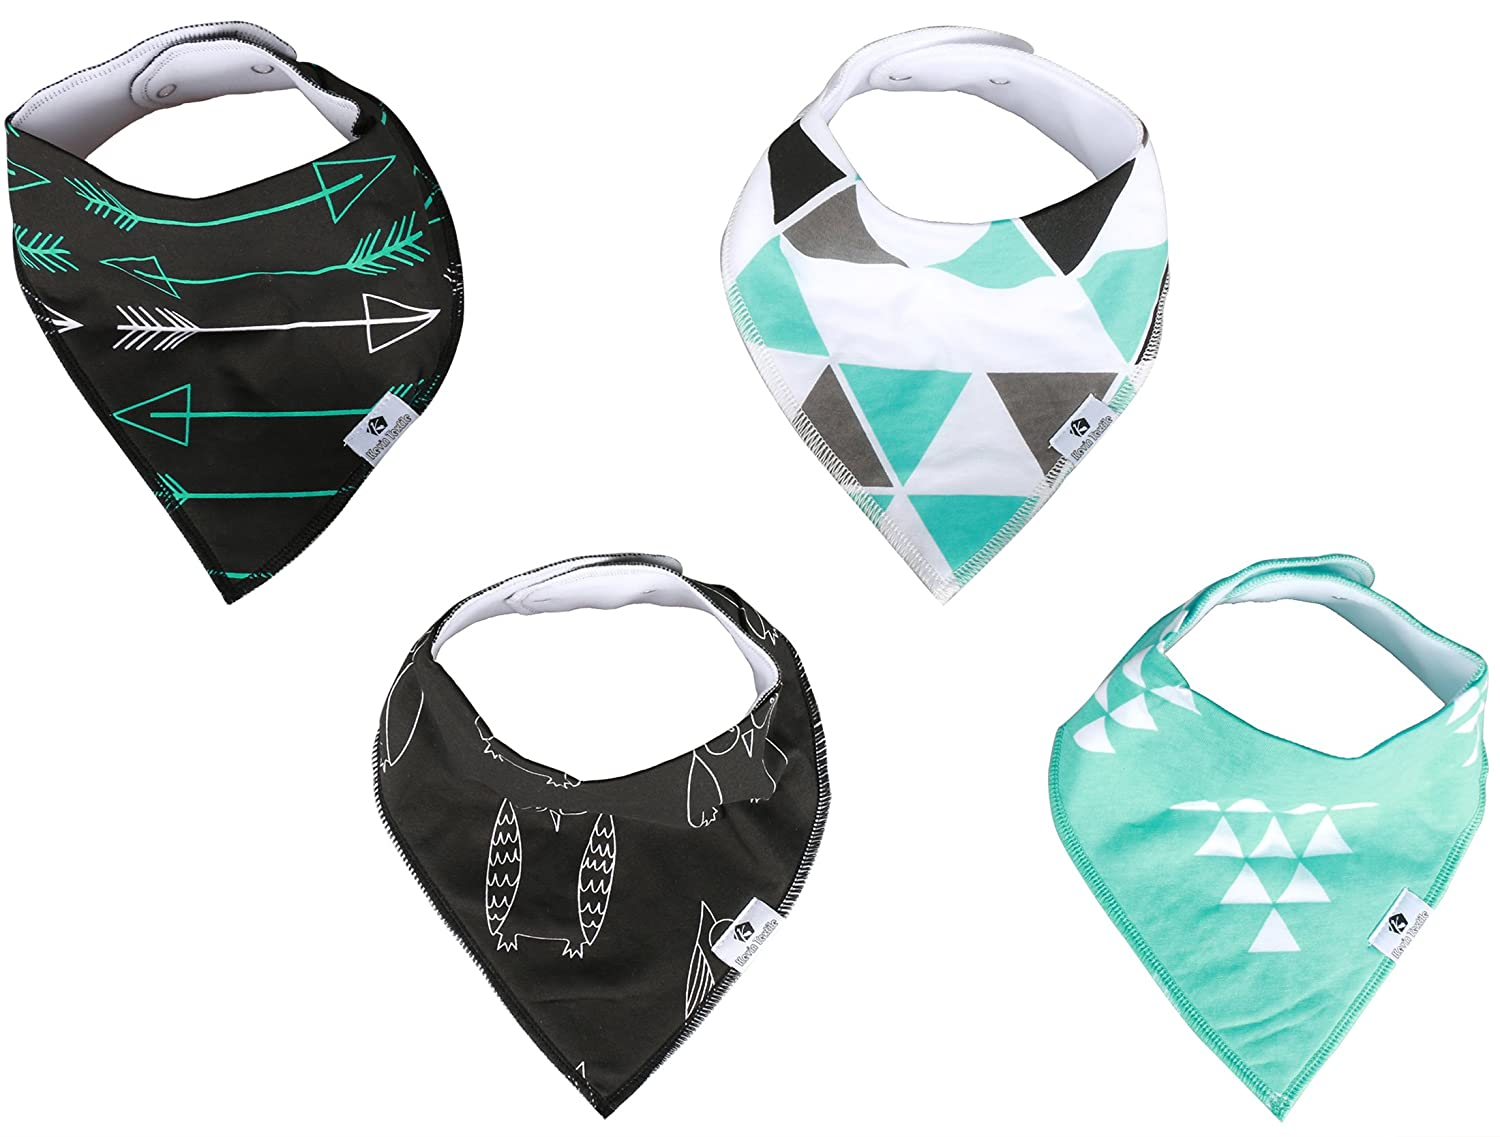 Baby Bandana Drool Bibs By Kevin Textile Unisex 4 Pack Hey Busy Bee Round Bib Absorbent Organic Cotton Best Gift For Boys Girls